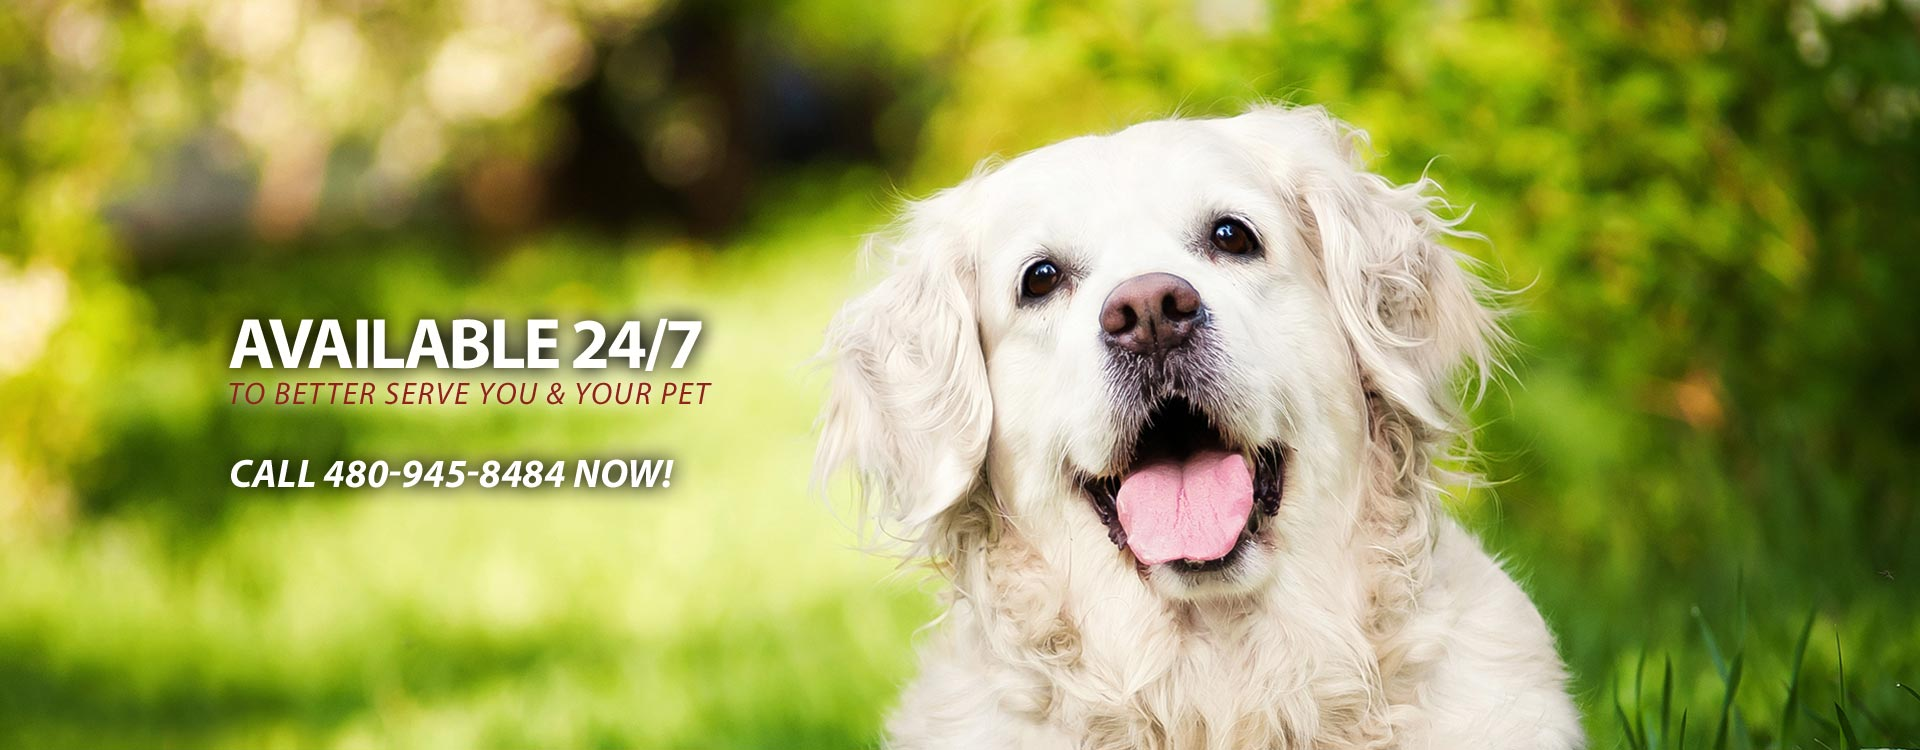 24 Hour Tempe Veterinary Service